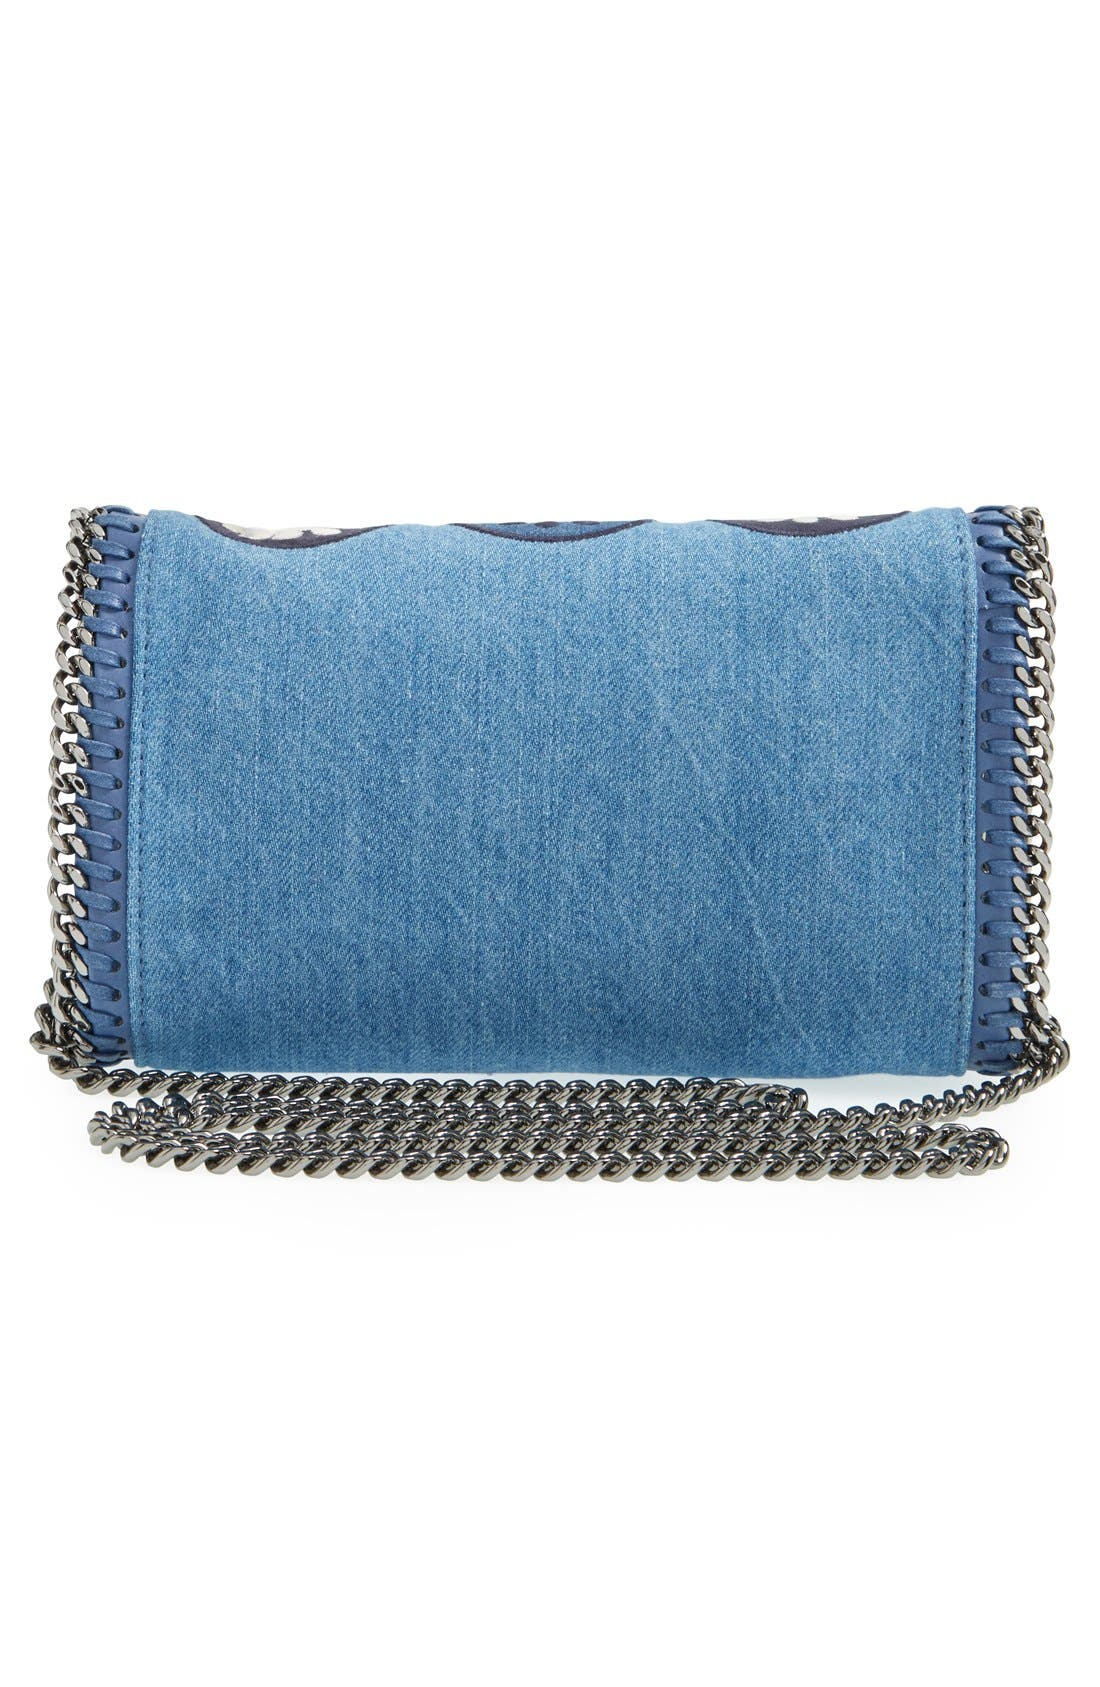 'Falabella - Adorned' Denim Crossbody Bag,                             Alternate thumbnail 3, color,                             Blue